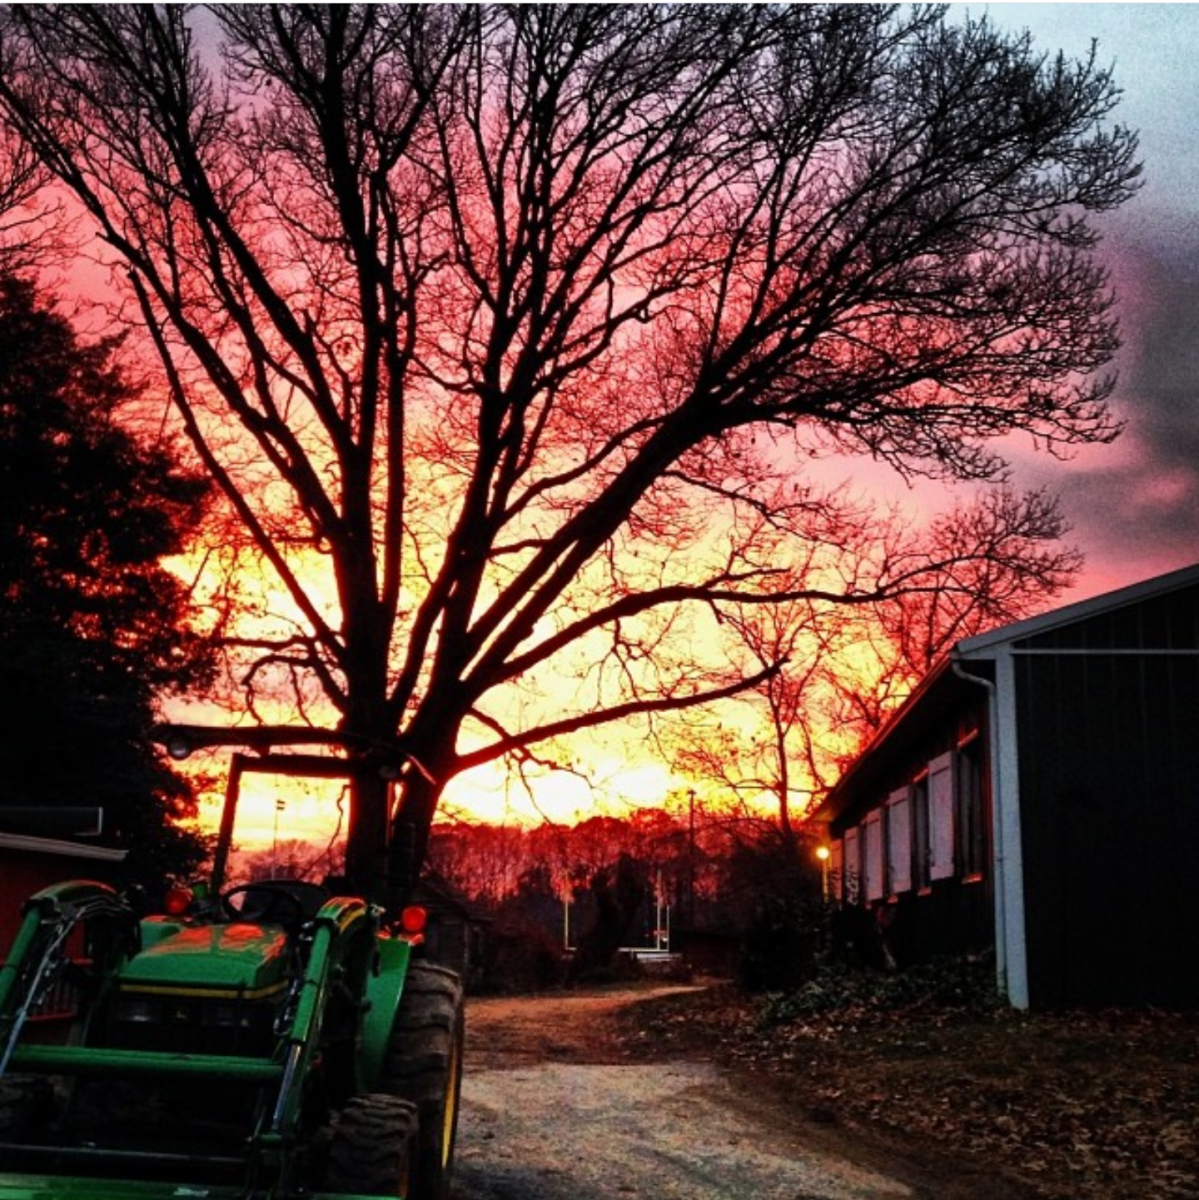 """You know what they say """"red sky at night sailors delight, red sky at morning,sailors take warning"""""""